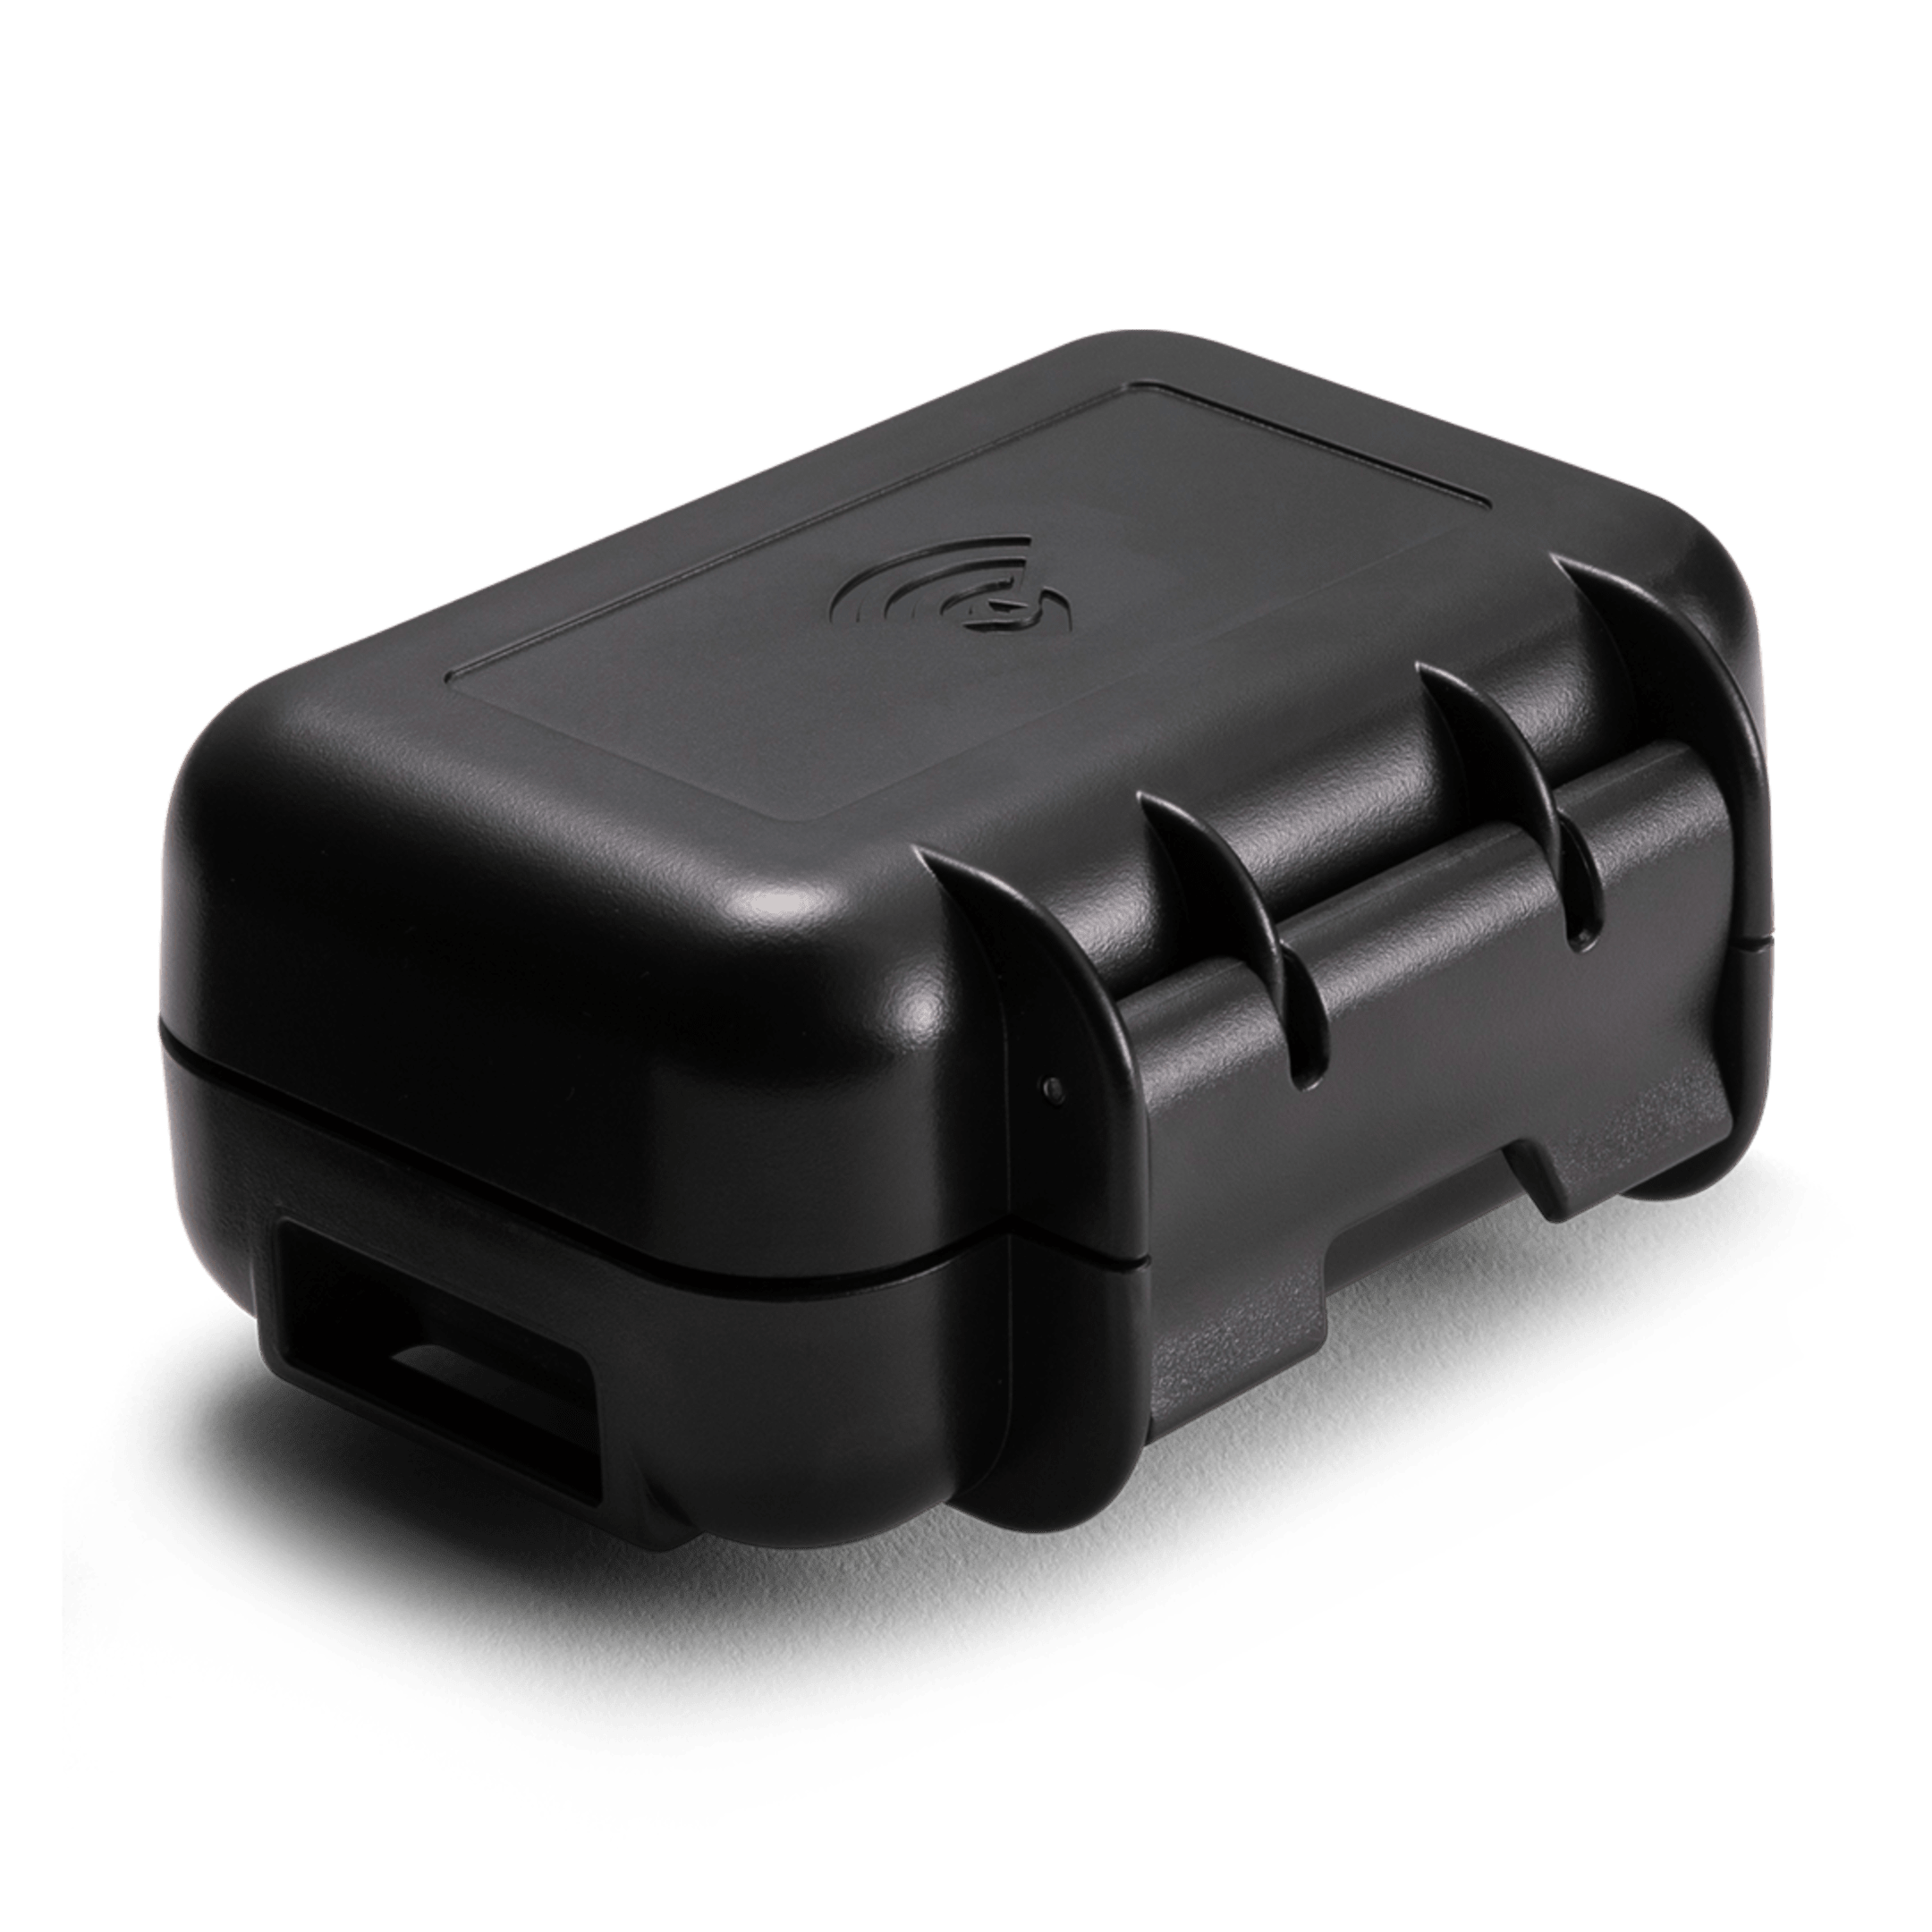 M2 Case for GL300 Series GPS Trackers